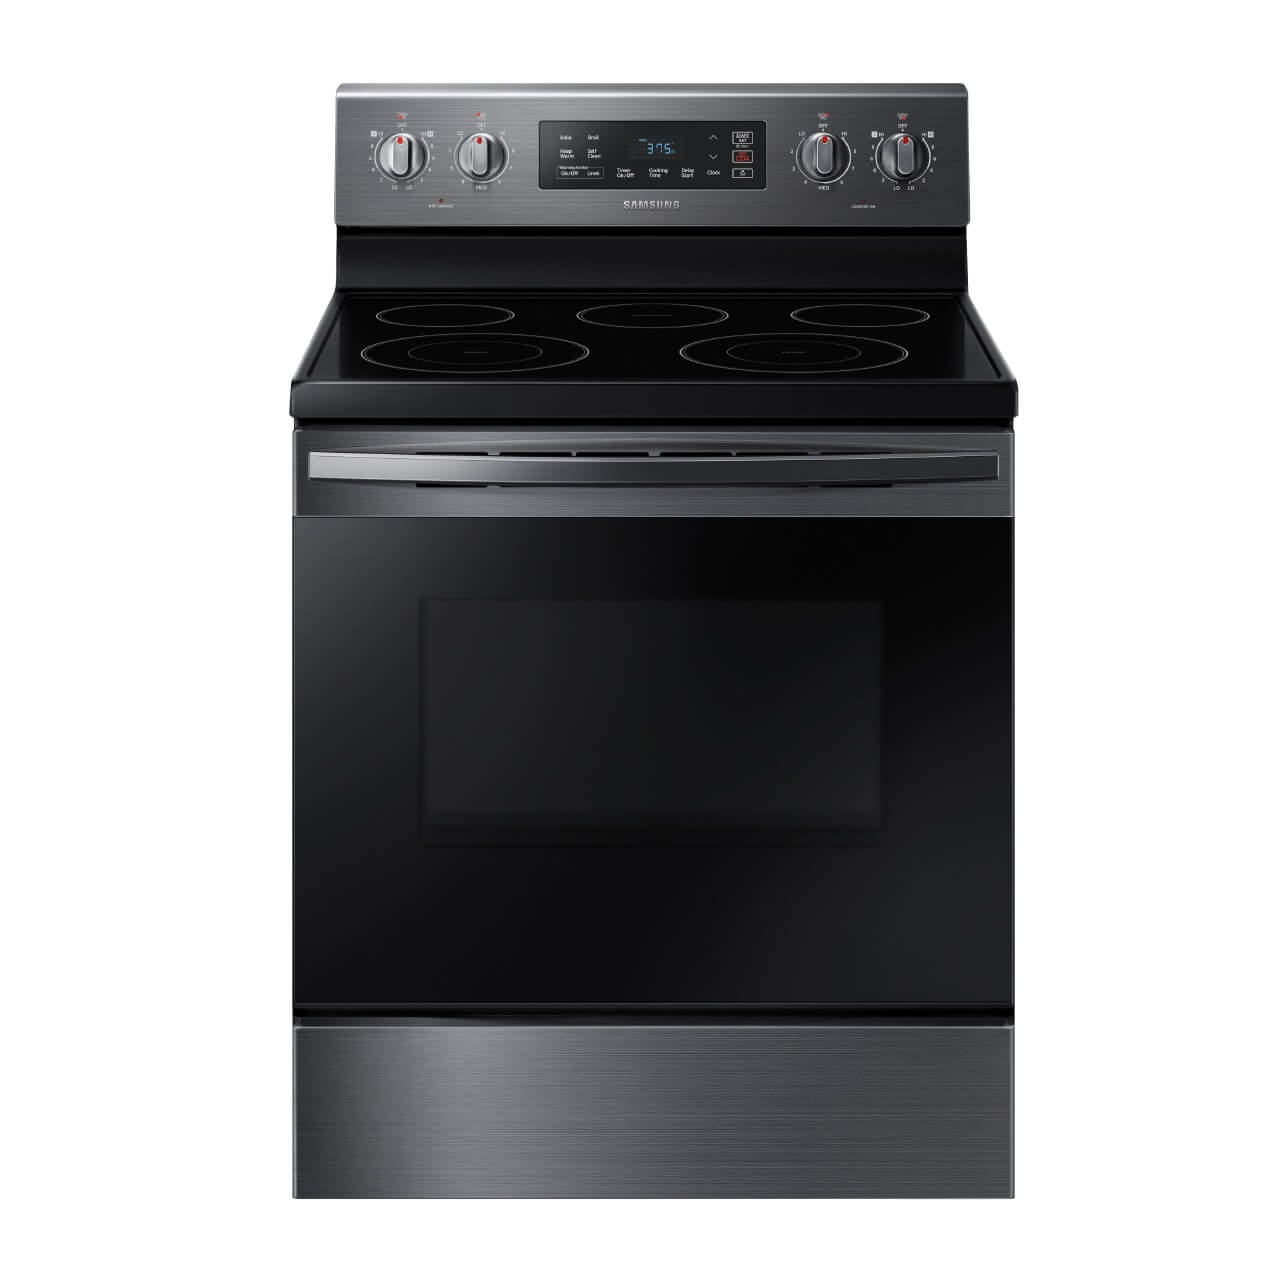 5.9 cu. ft. Self Cleaning Electric Range with Ceramic Cook Top - Black Stainless